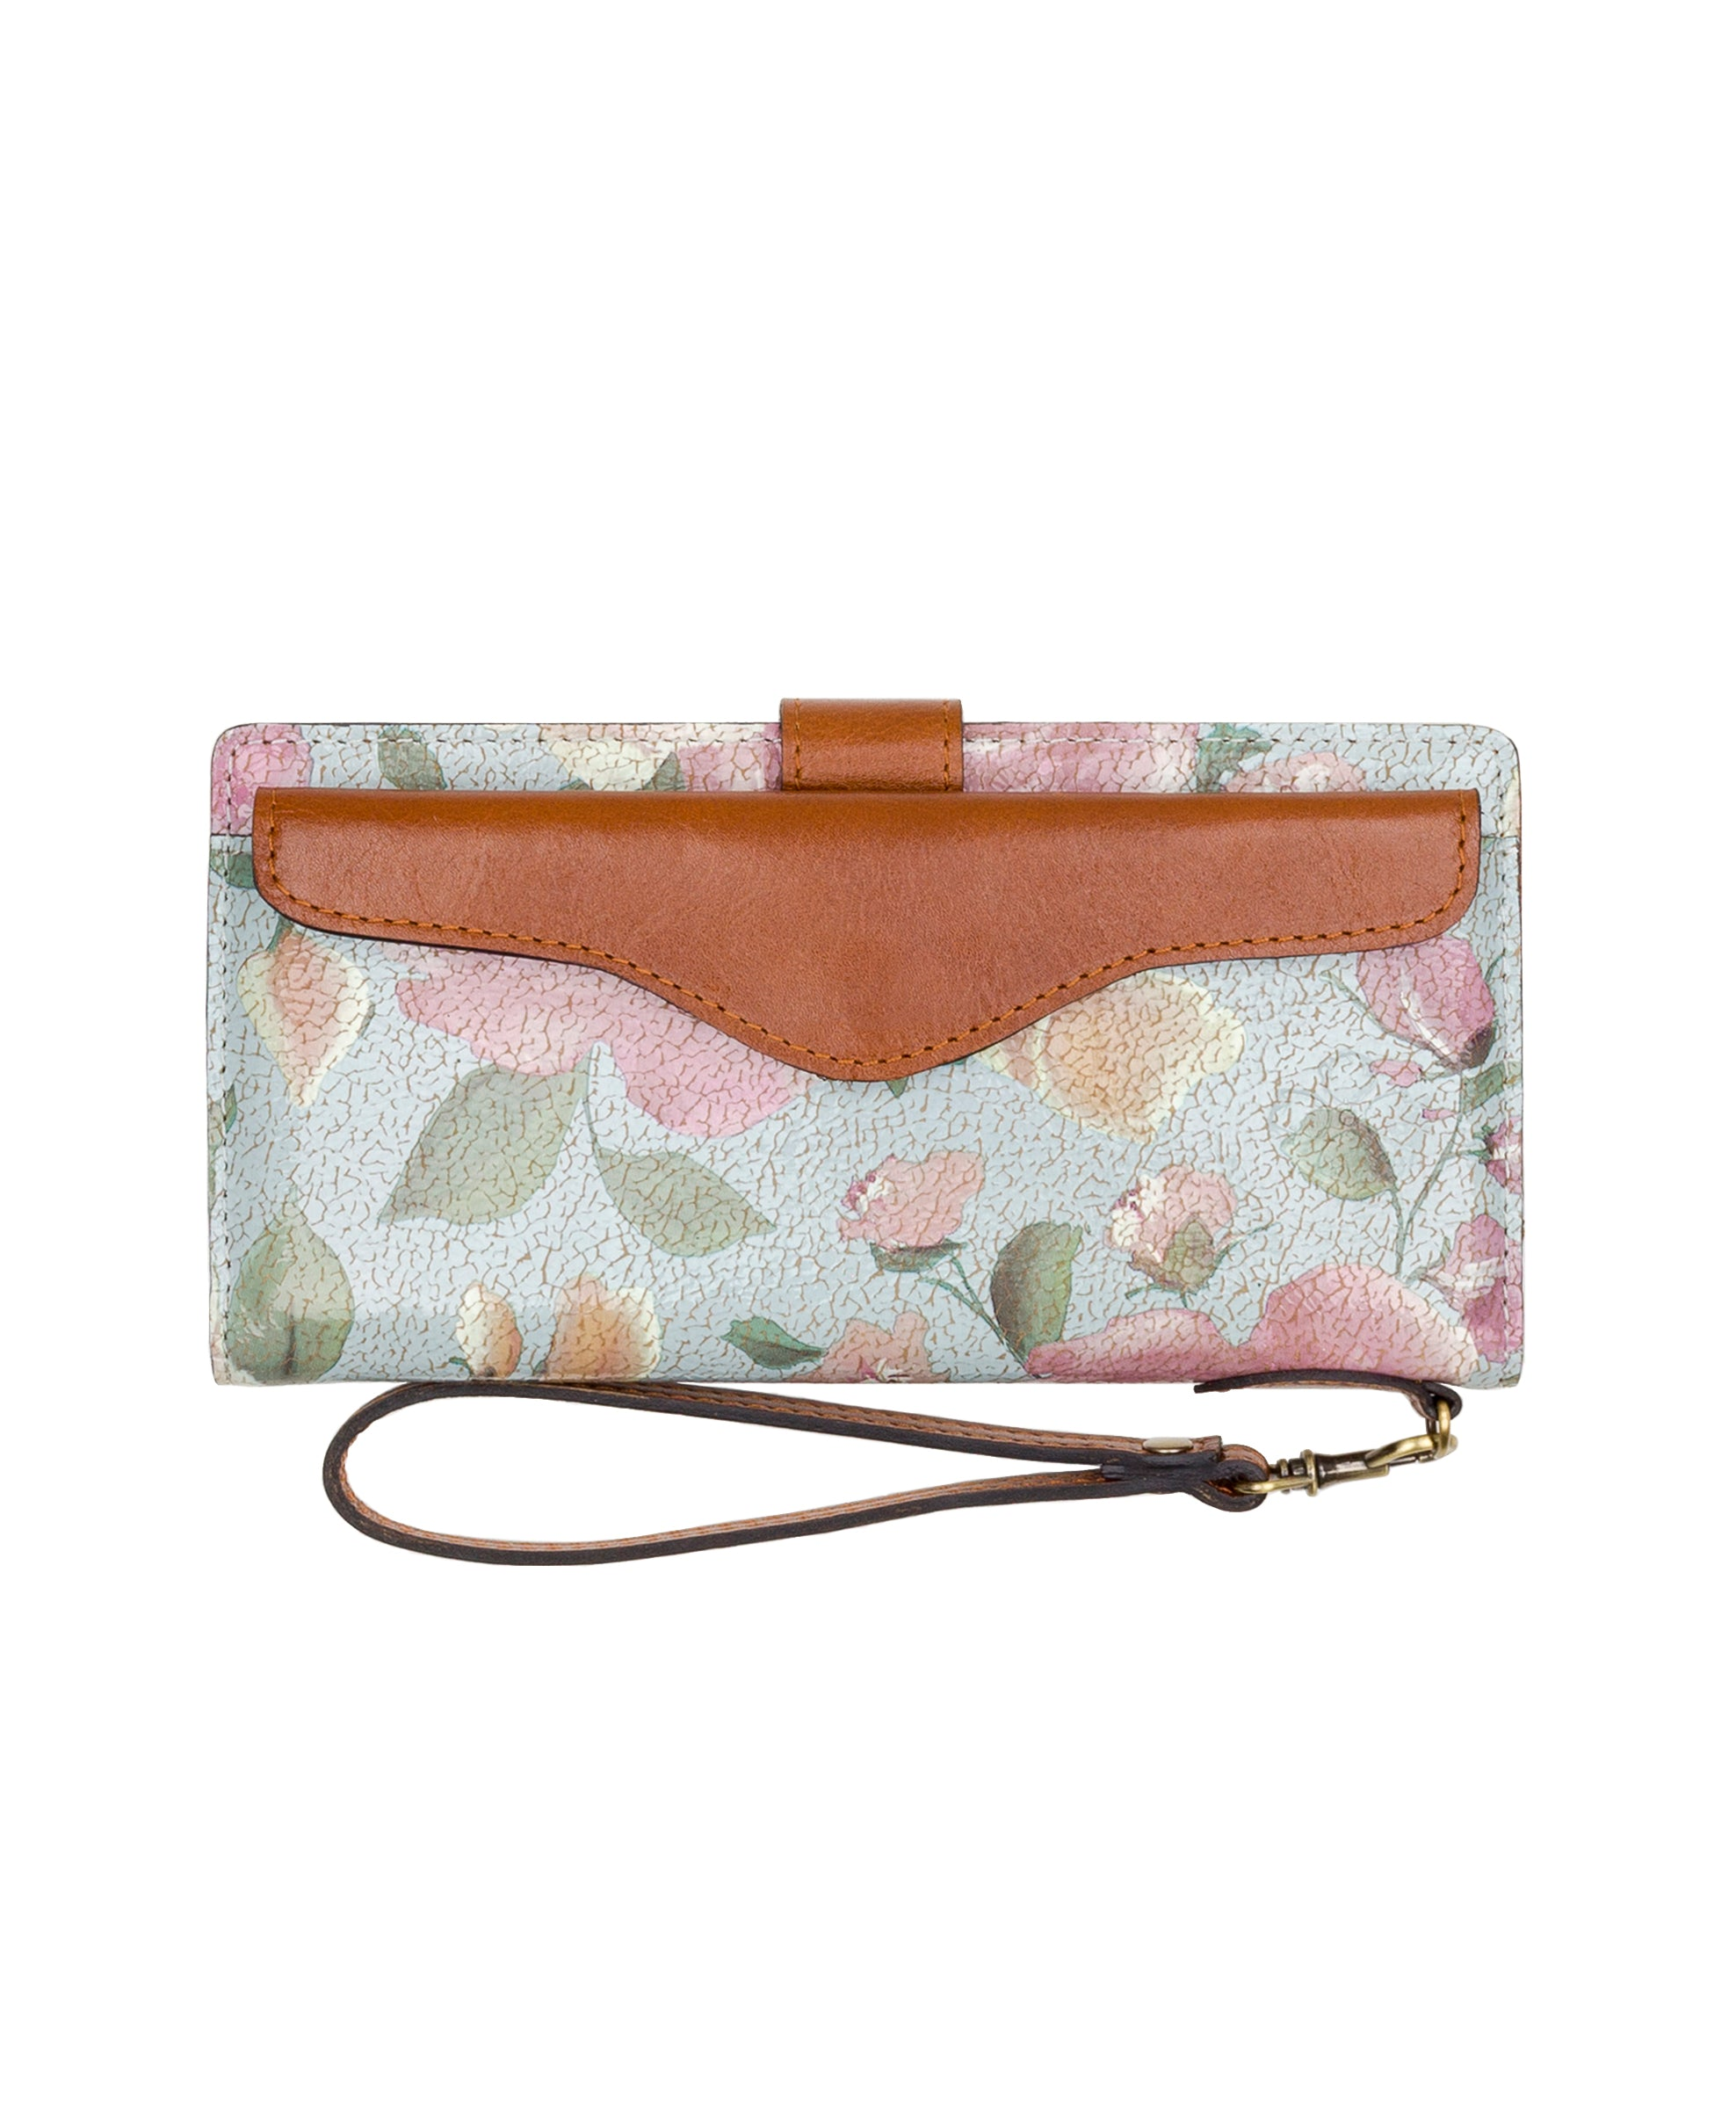 Valentia II Snap Wristlet - Crackled Rose